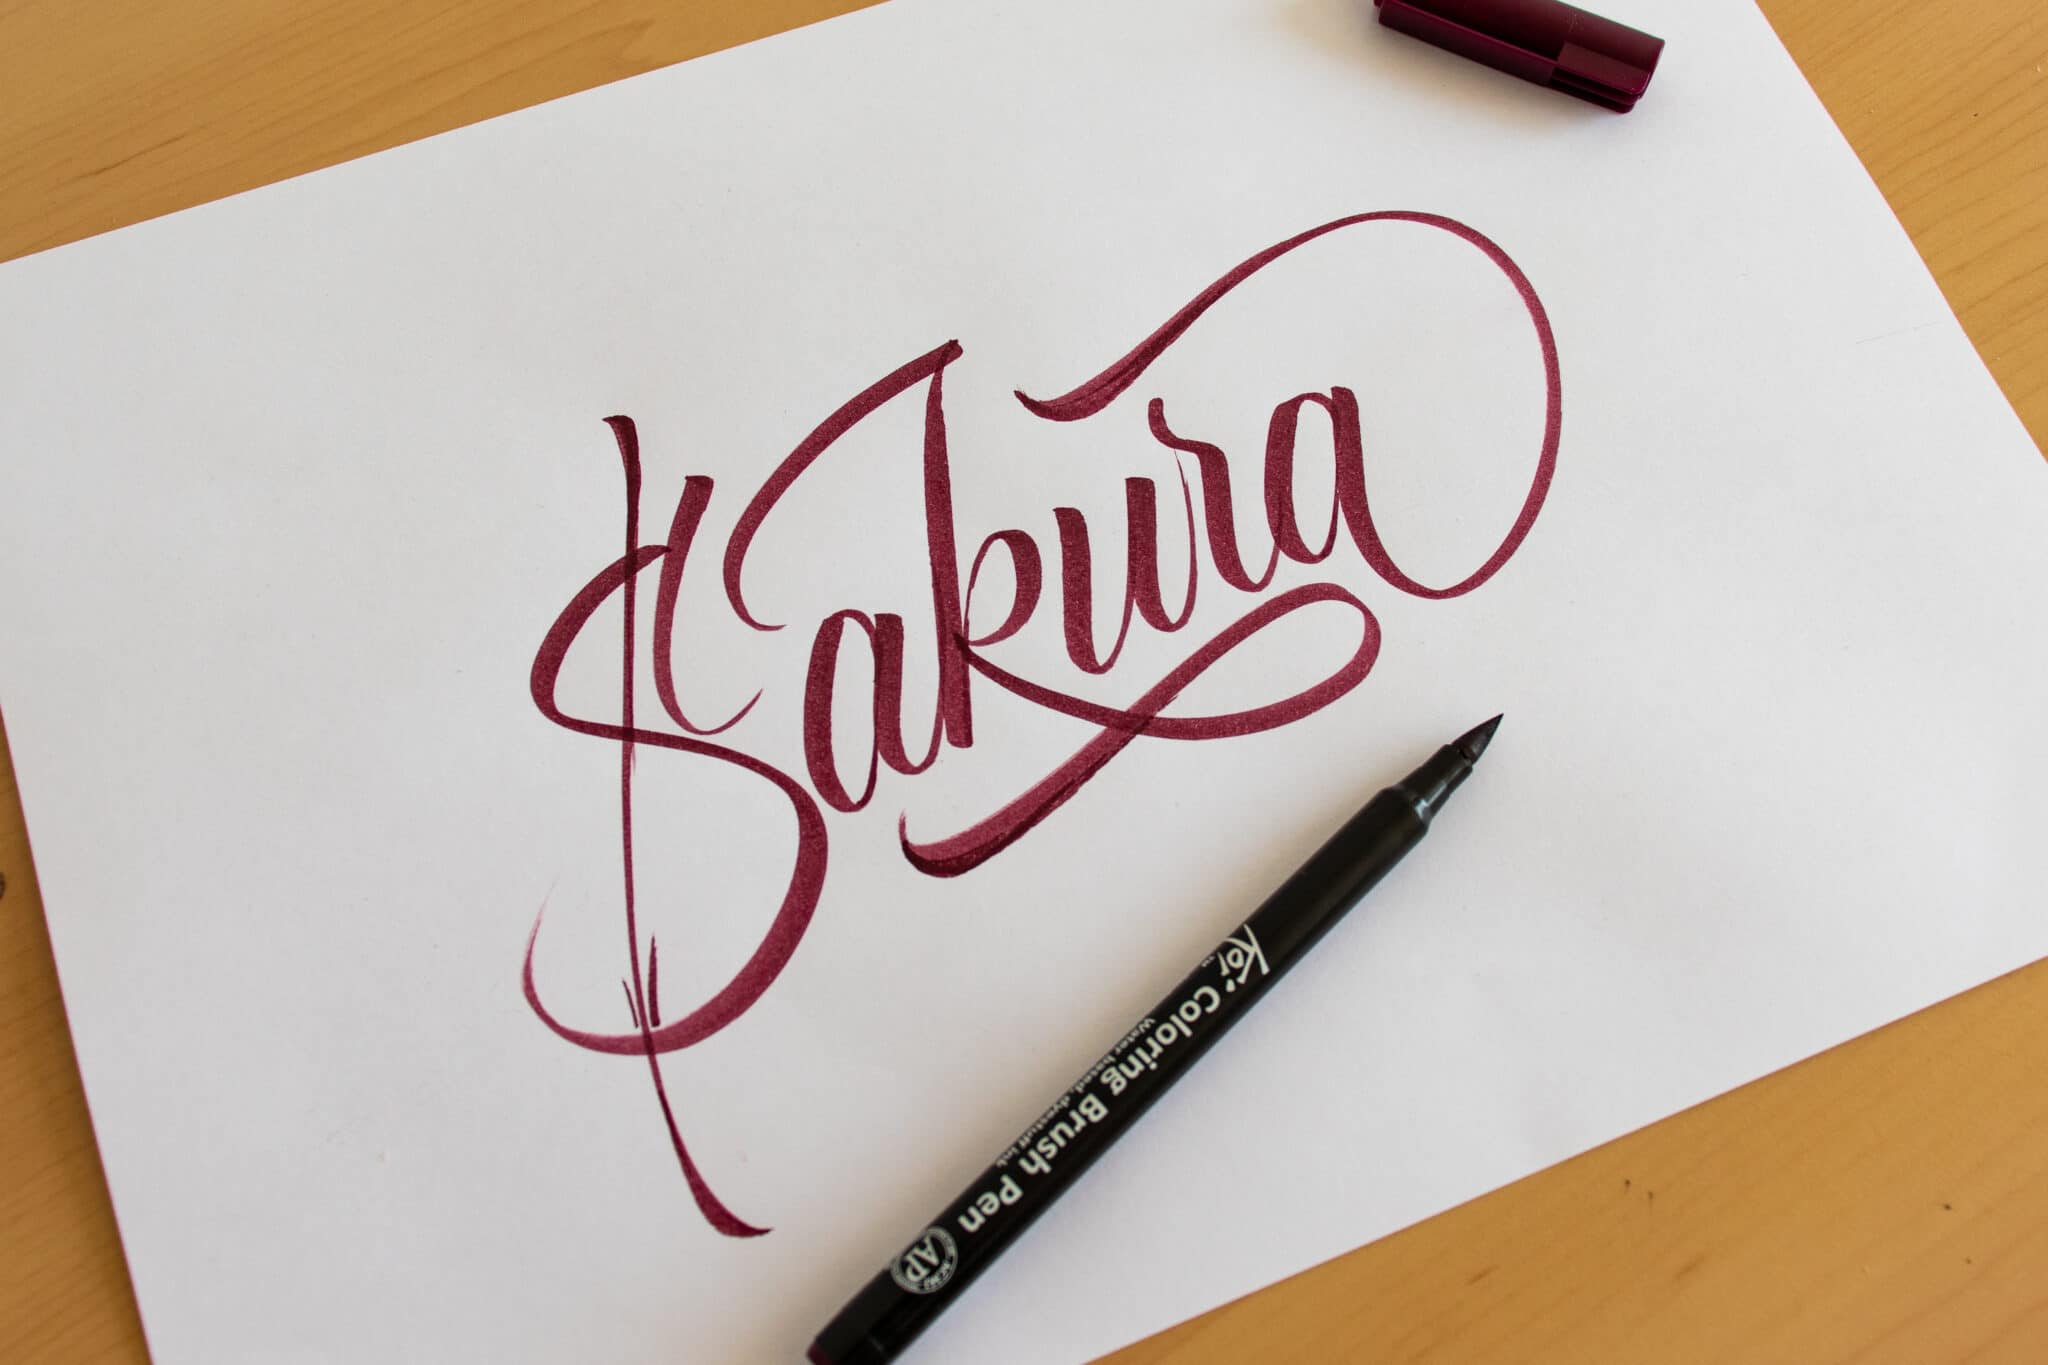 Sakura Koi Brush Pen - Sample calligraphy